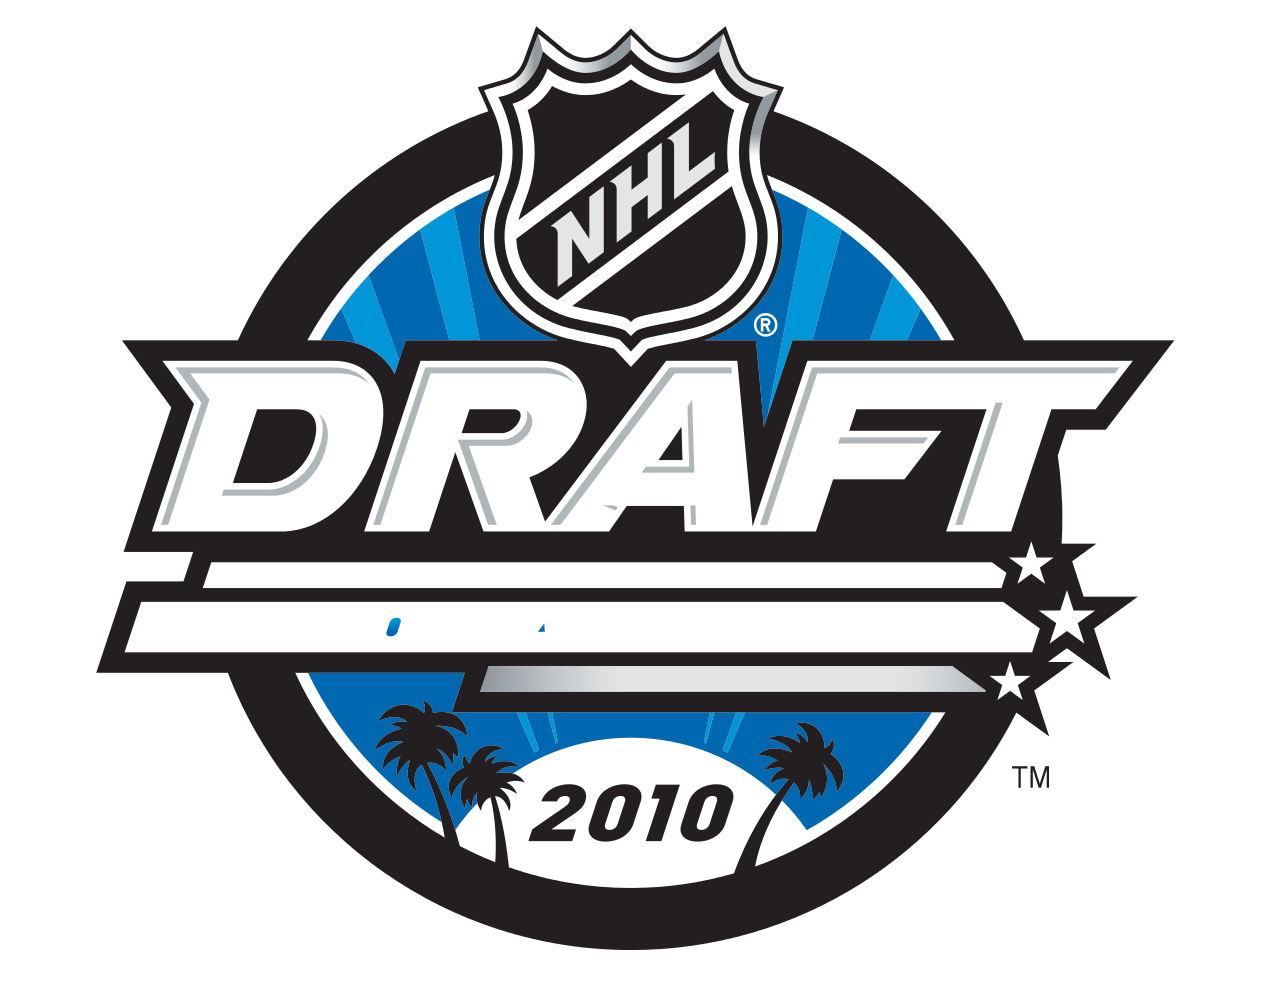 file nhl entry draft logo svg wikipedia #33675